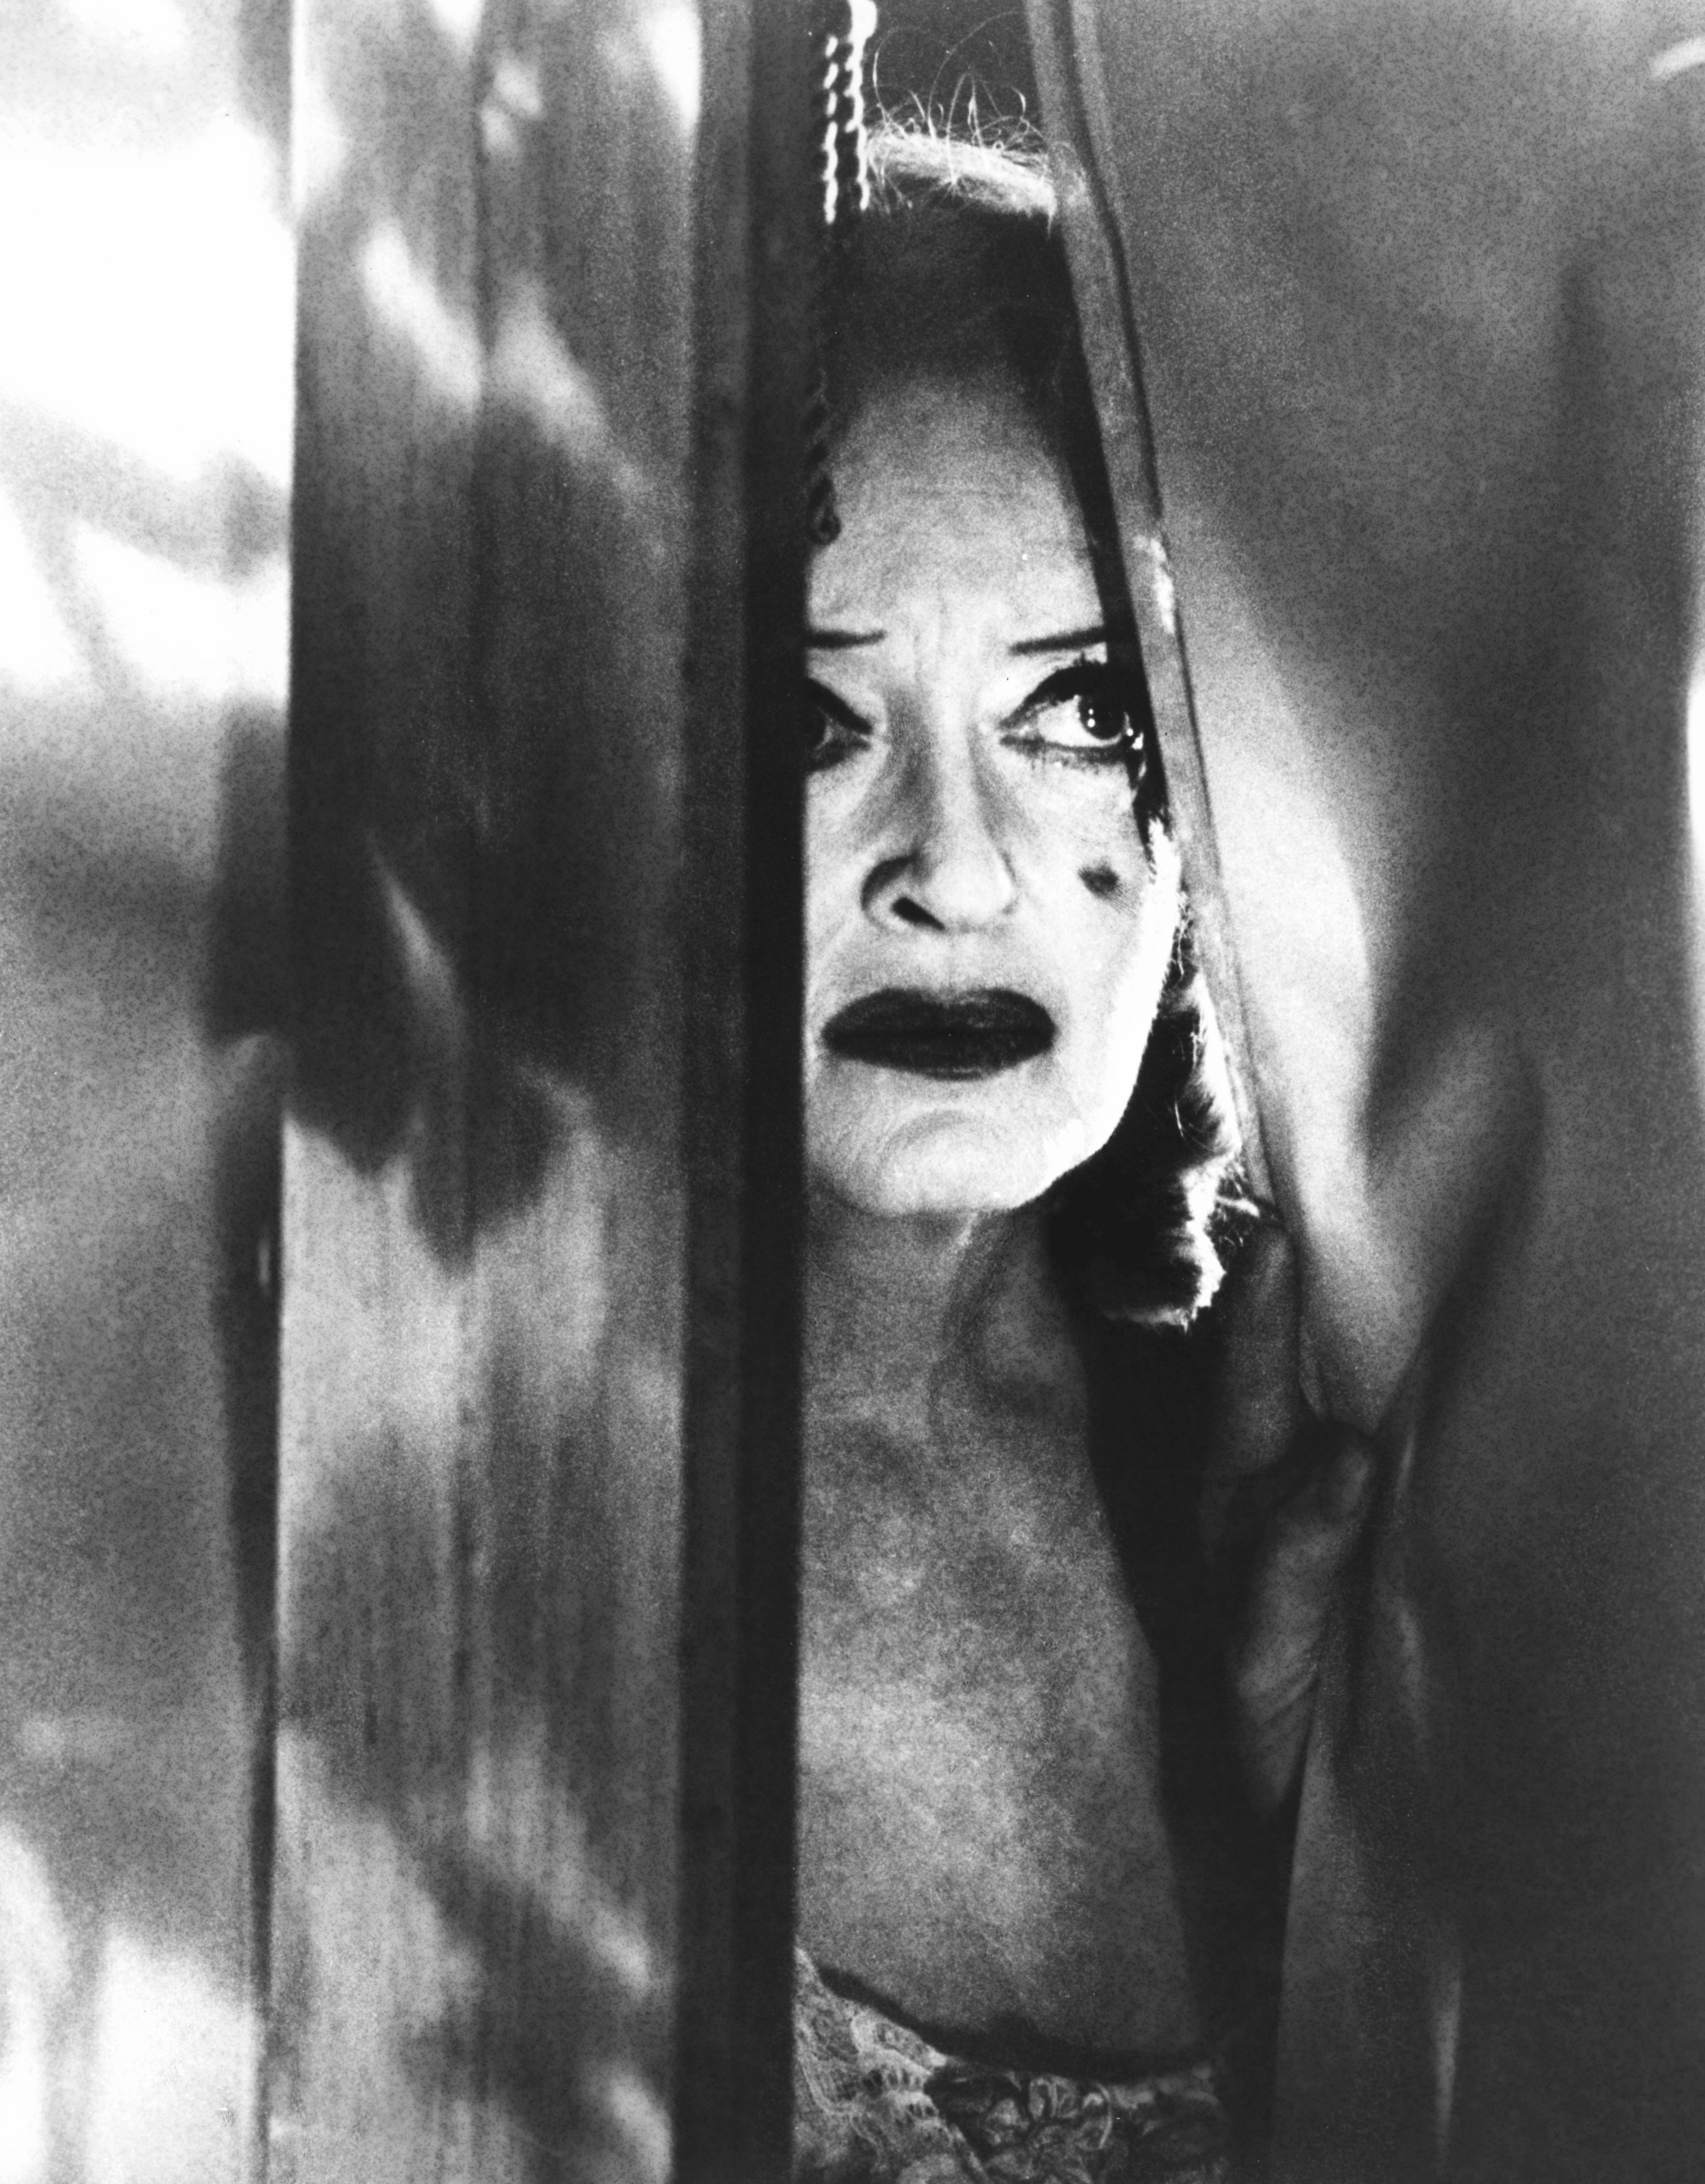 Bette Davis with creepy makeup staring out a window mysteriously